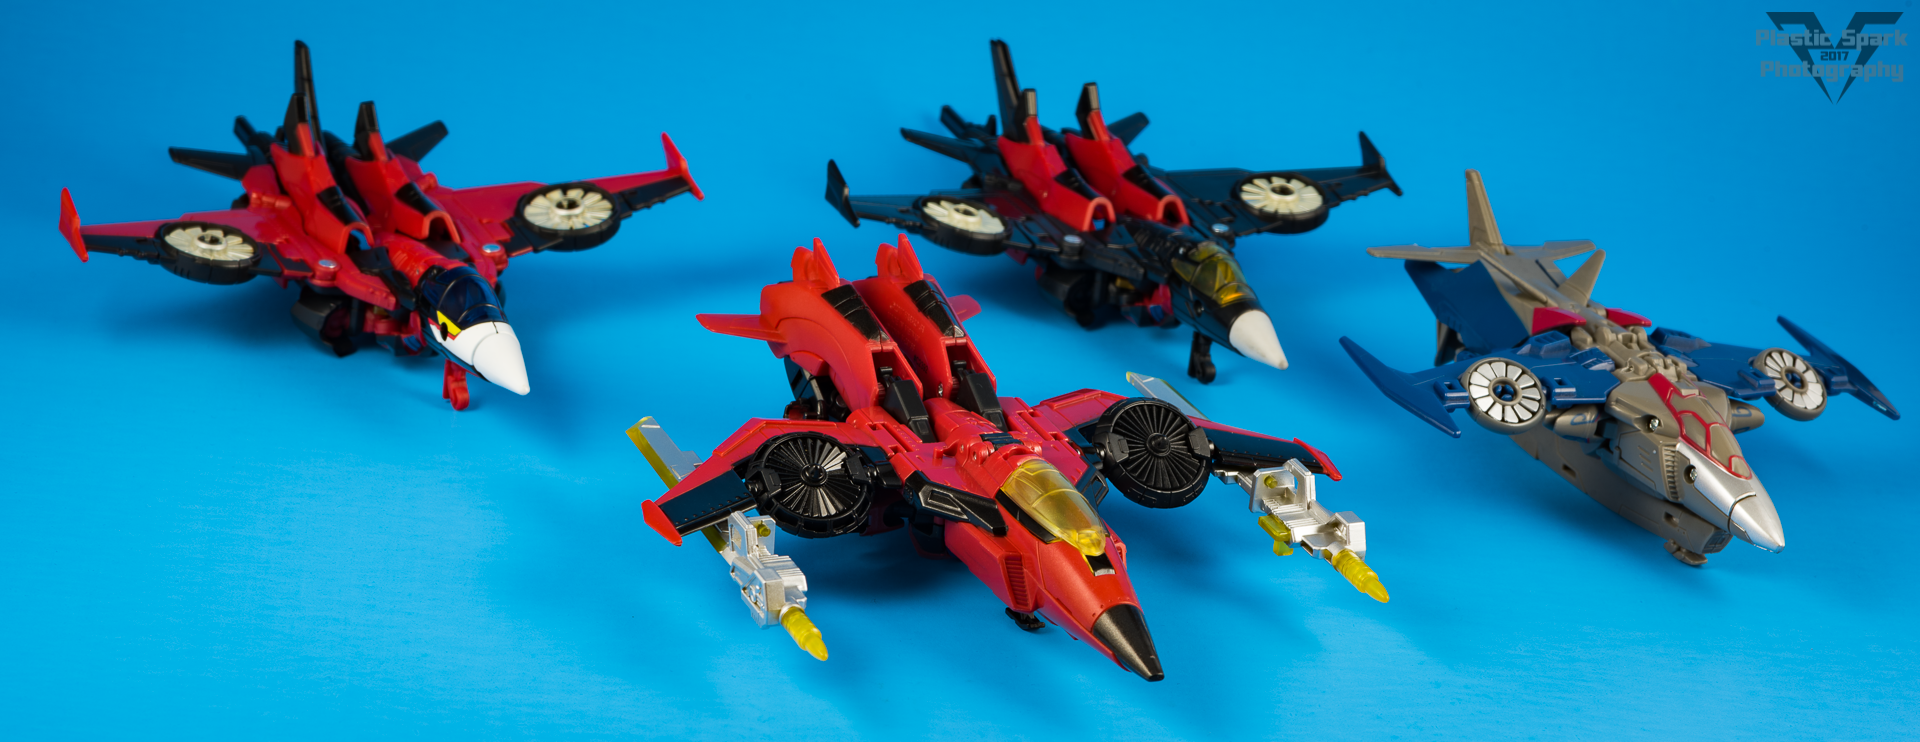 Titans-Return-Windblade-and-Scorchfire-(28-of-29).png